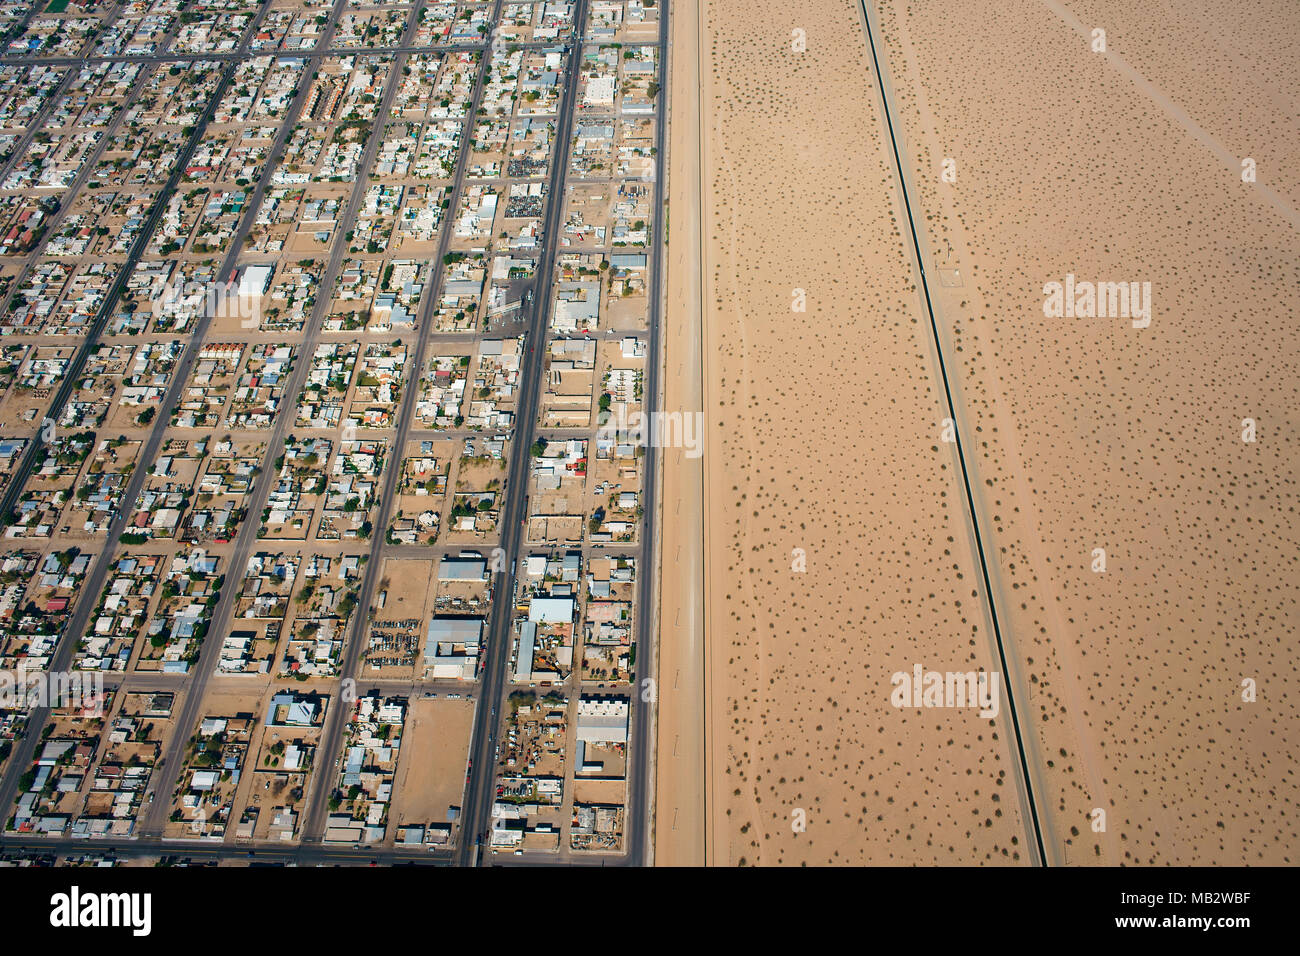 INTERNATIONAL BORDER: MEXICO - UNITED STATES (aerial view). City of San Luis Rio Colorado in Sonora, Mexico stretching alongside the U.S. Border. - Stock Image